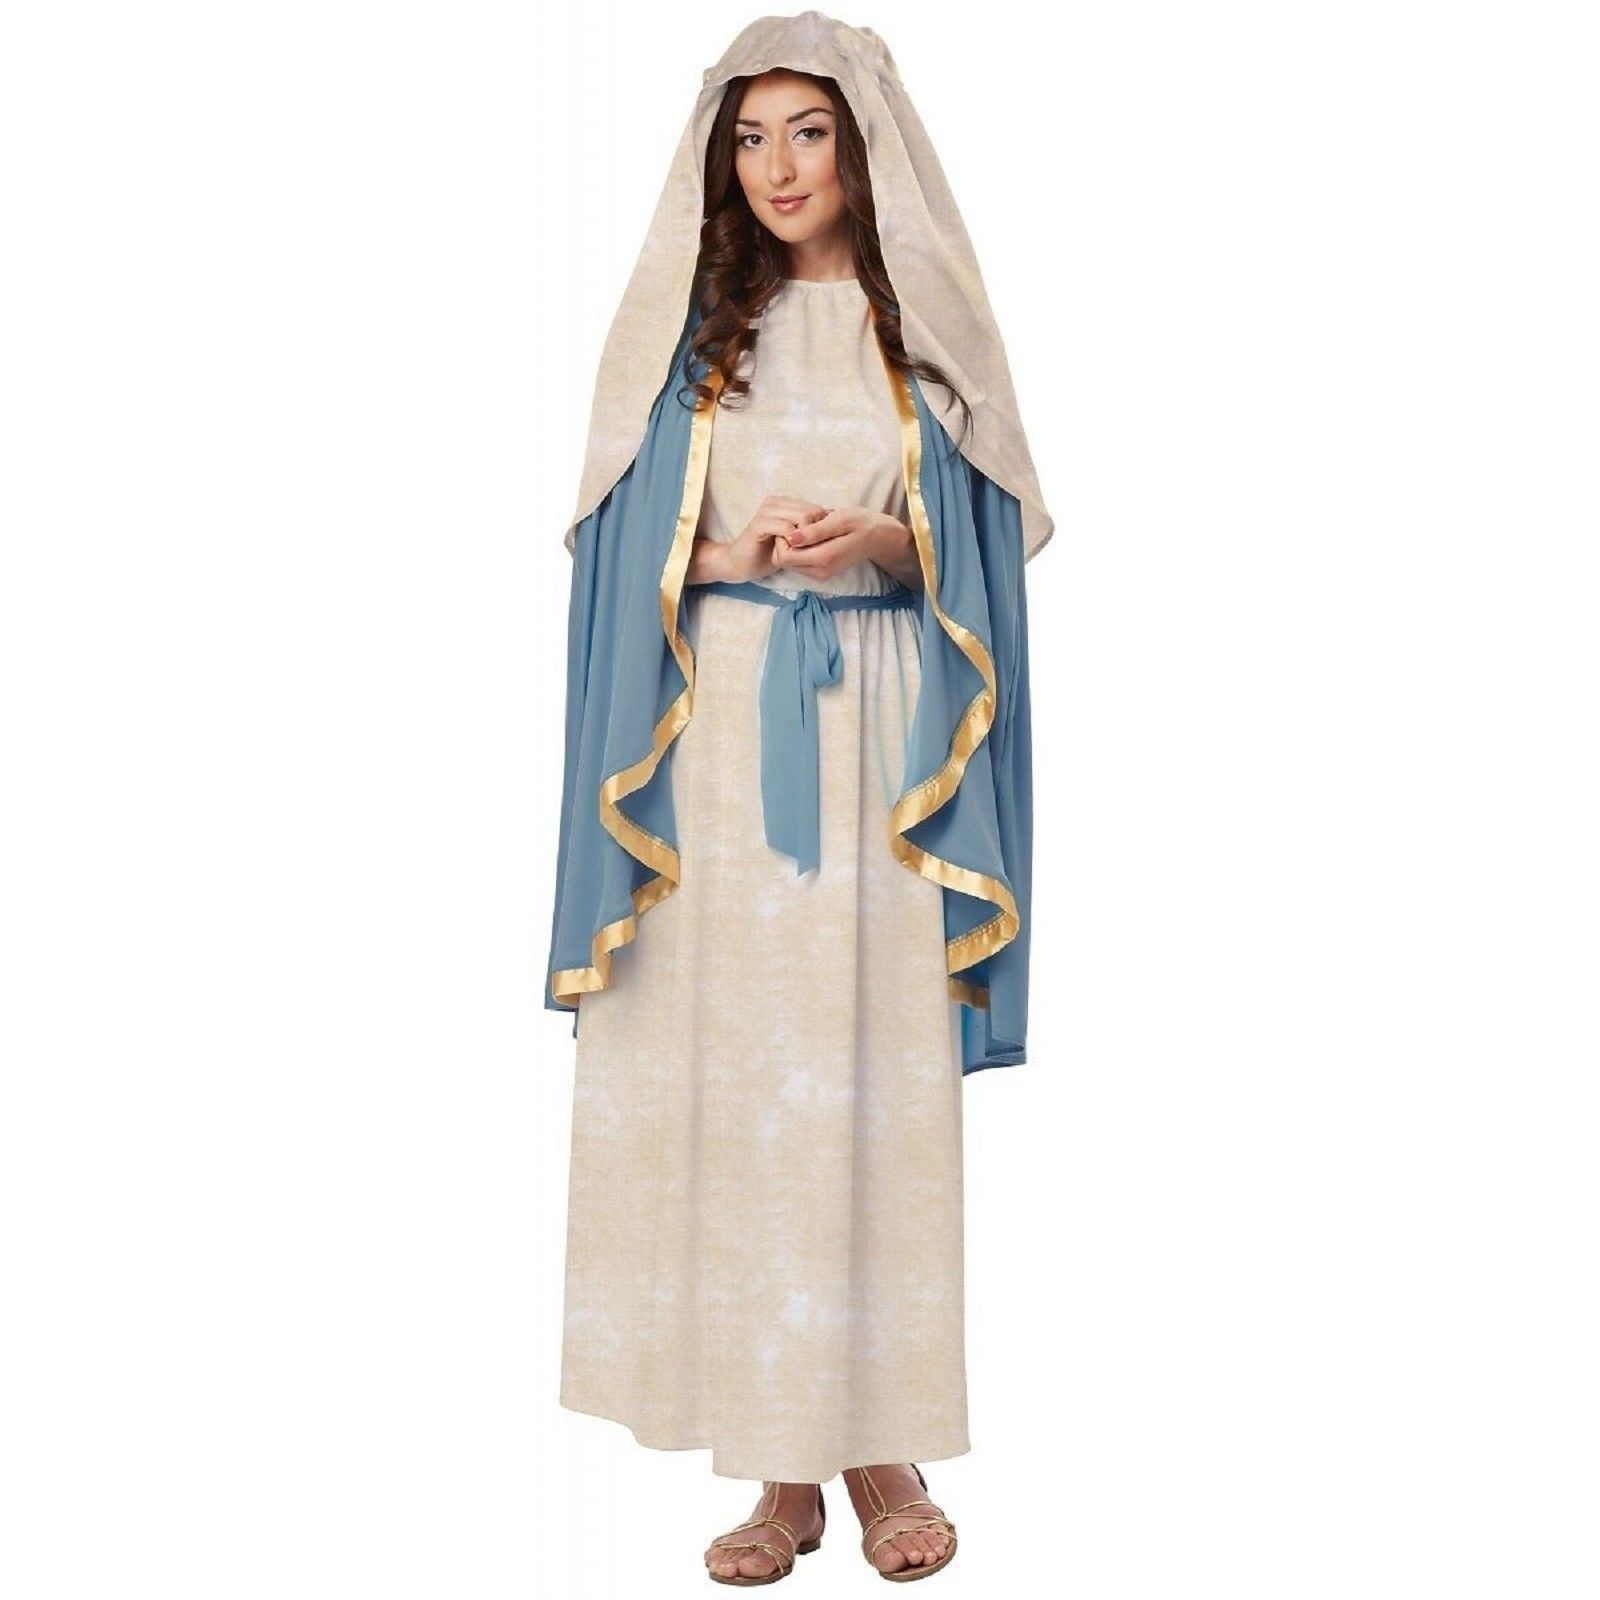 Biblical Virgin Mary Costume Women Adult Religious Christmas Halloween Bible